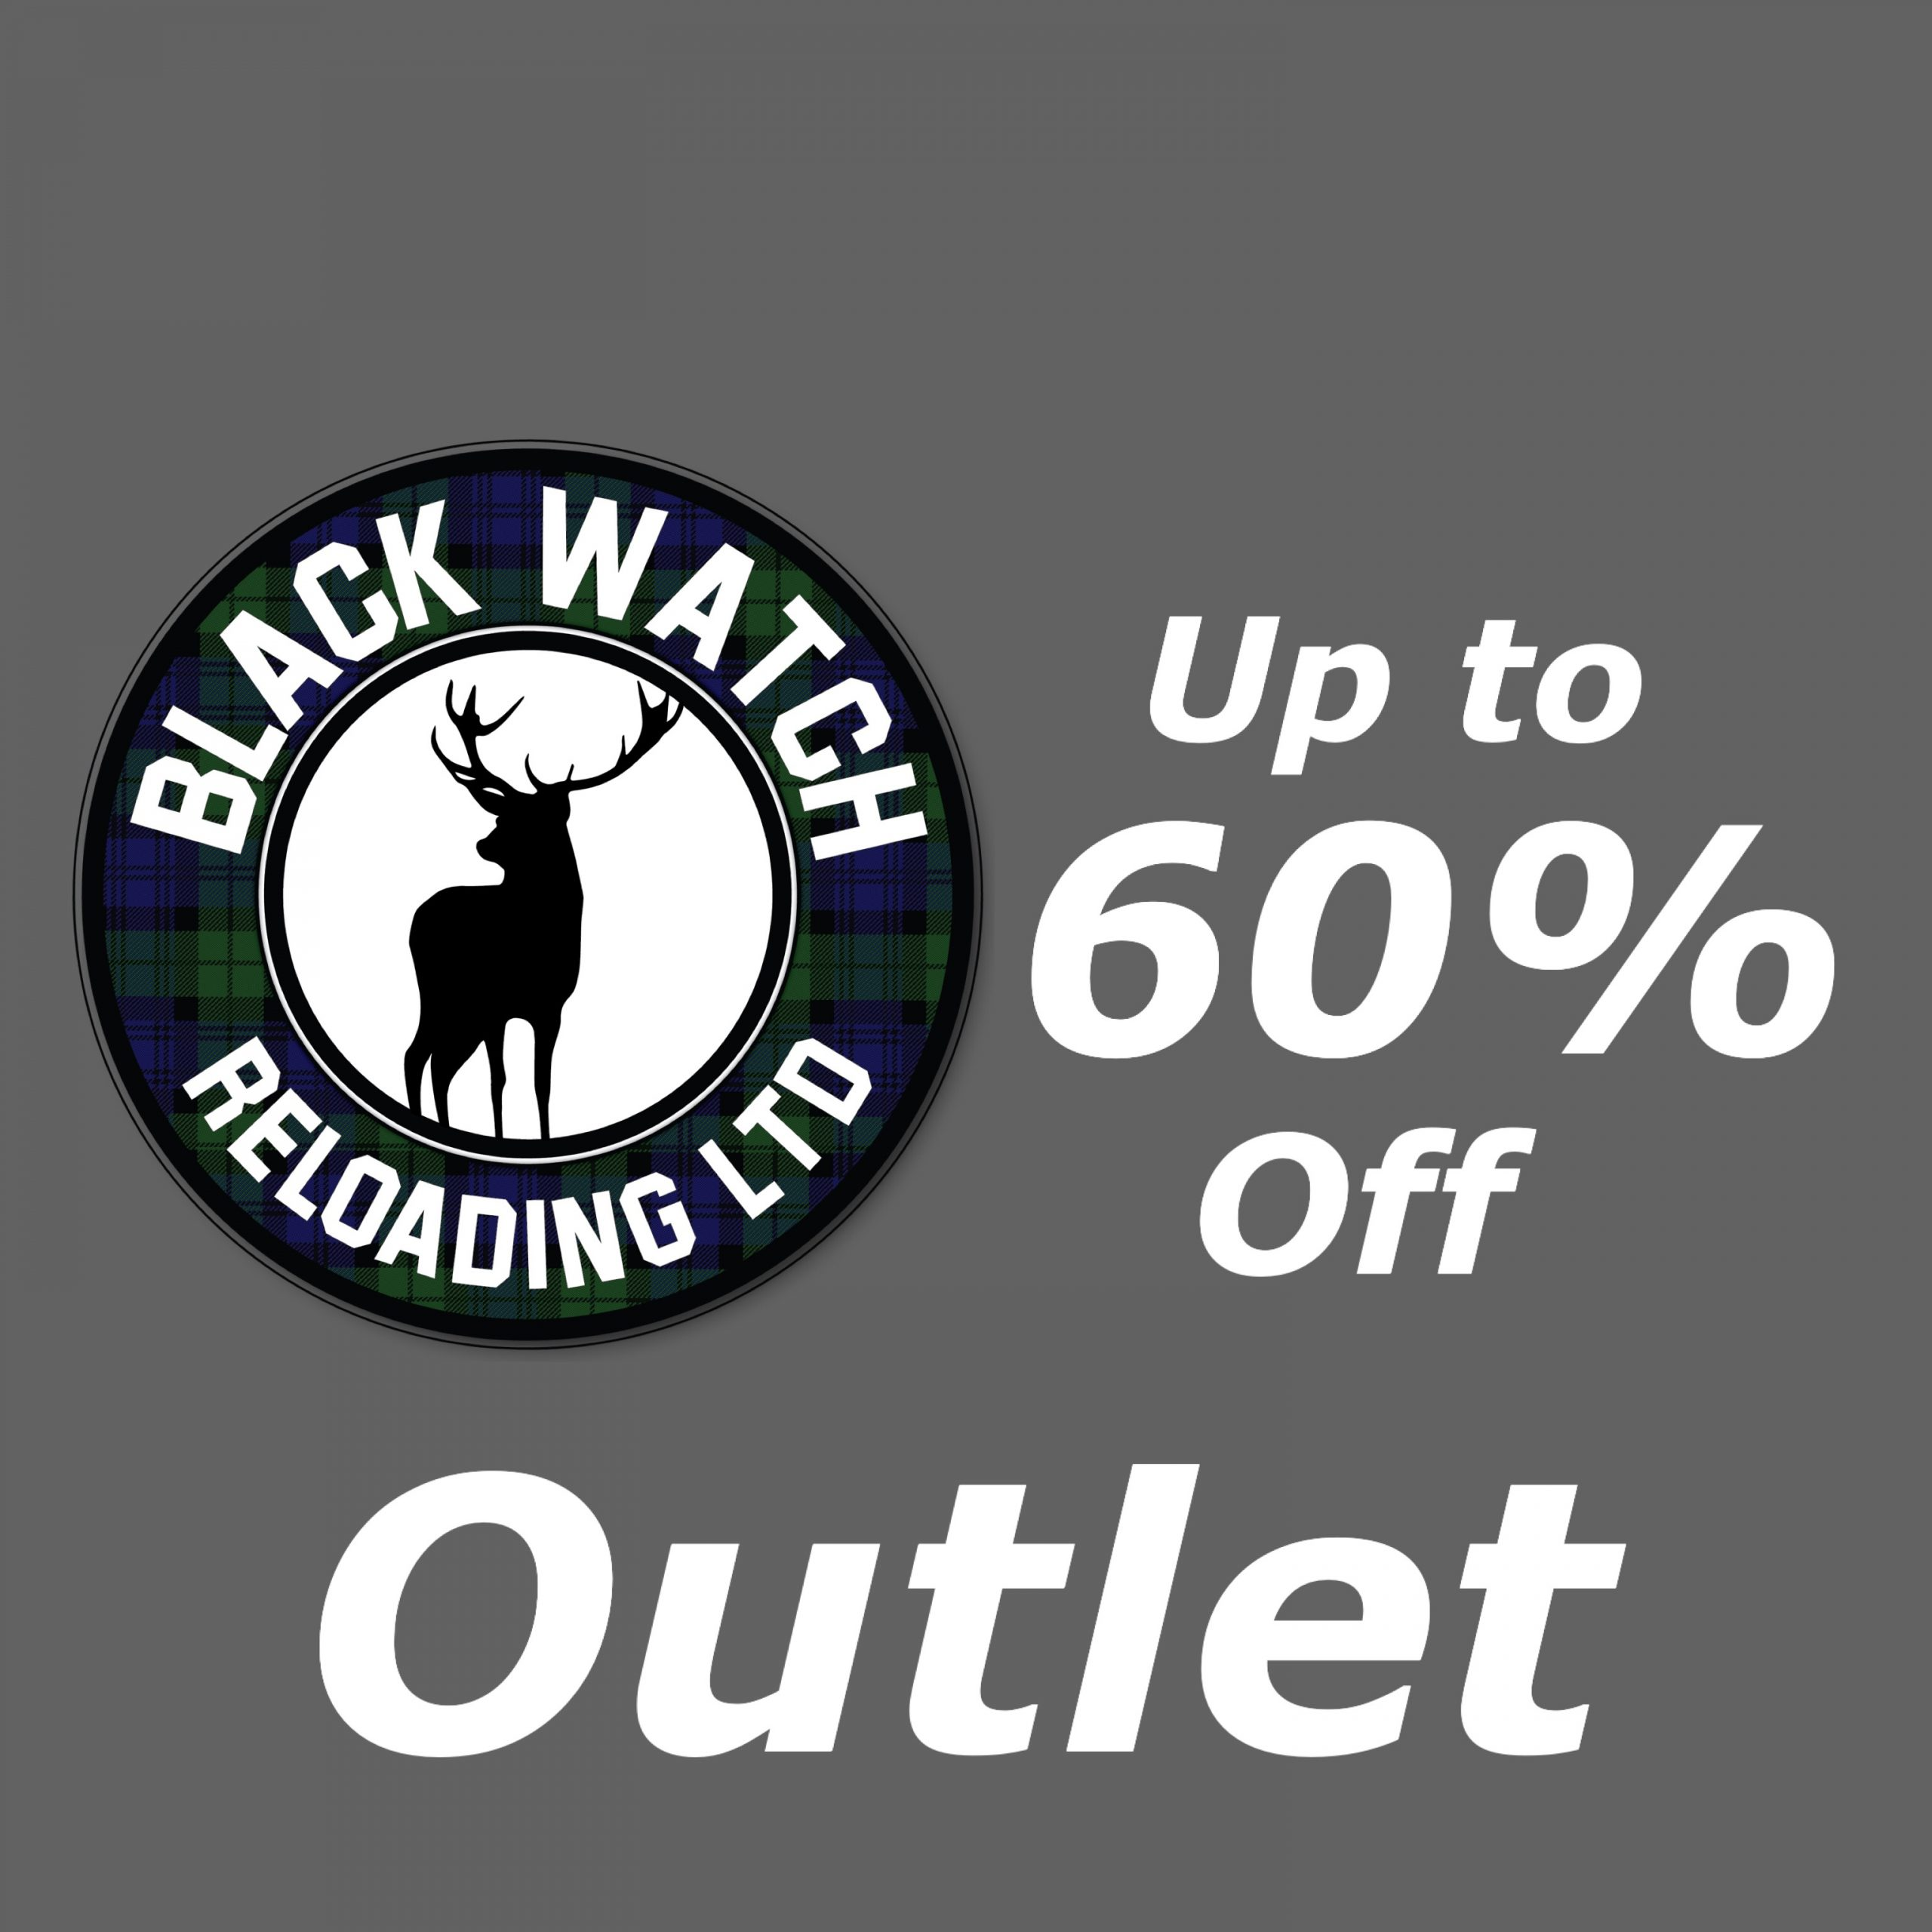 Black Watch Outlet